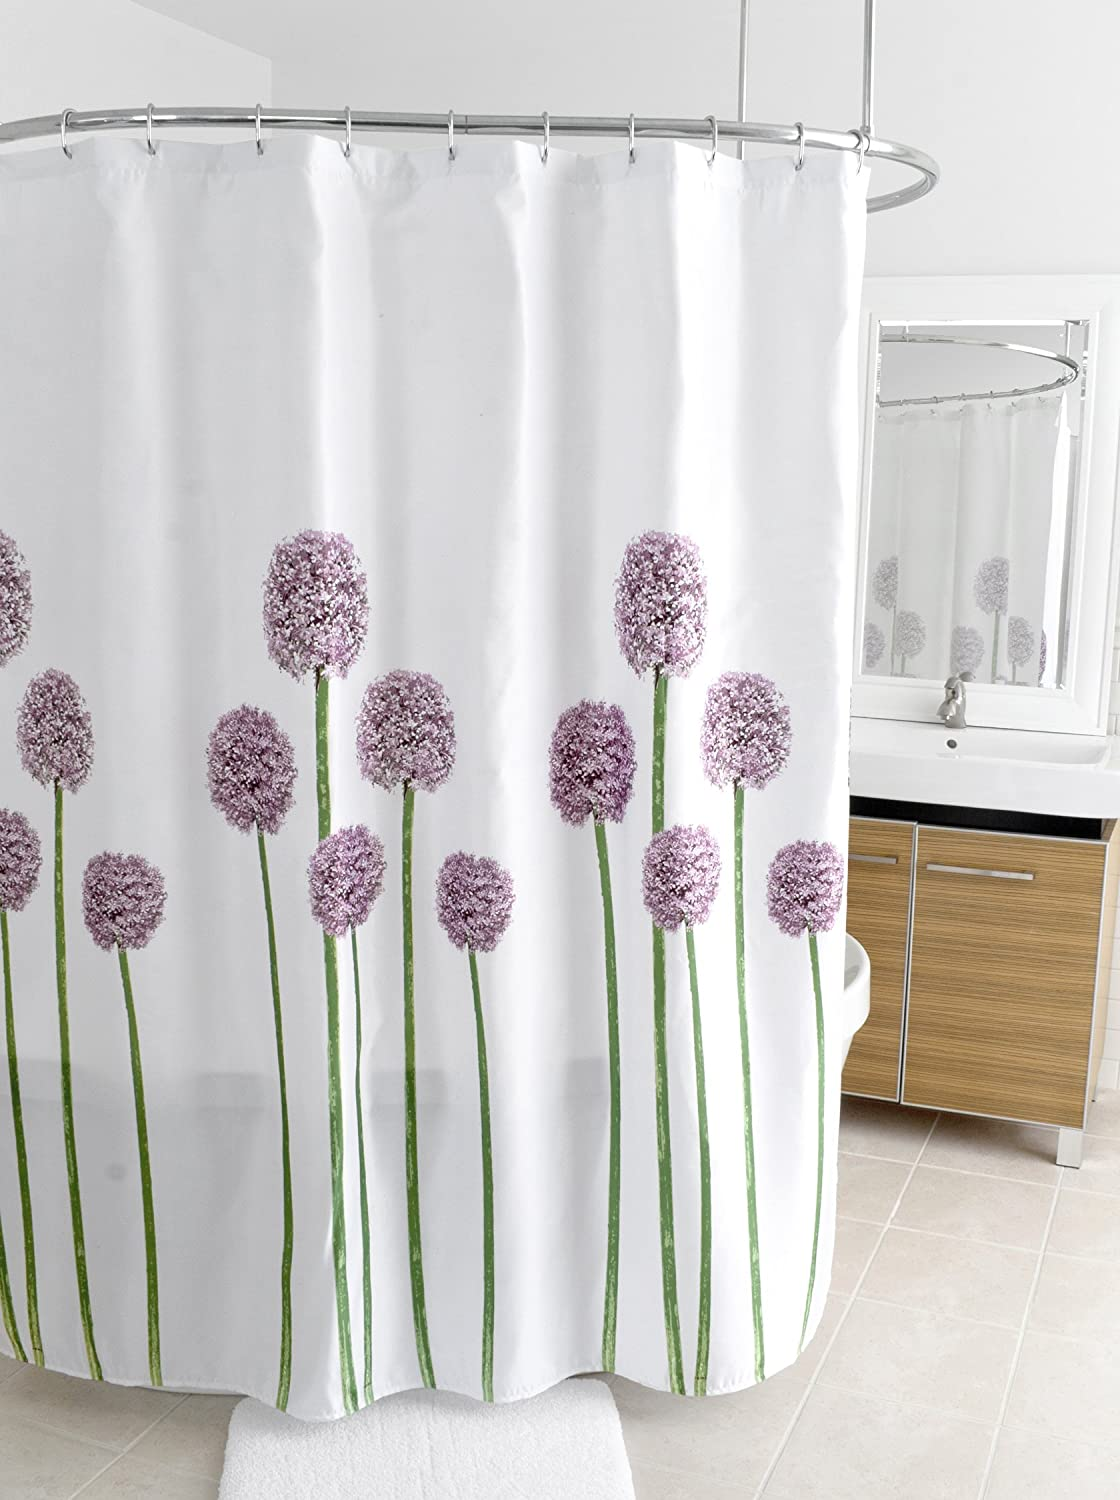 Incroyable Amazon.com: Splash Home Shower Curtain, 70 By 72 Inch, Allium: Home U0026  Kitchen